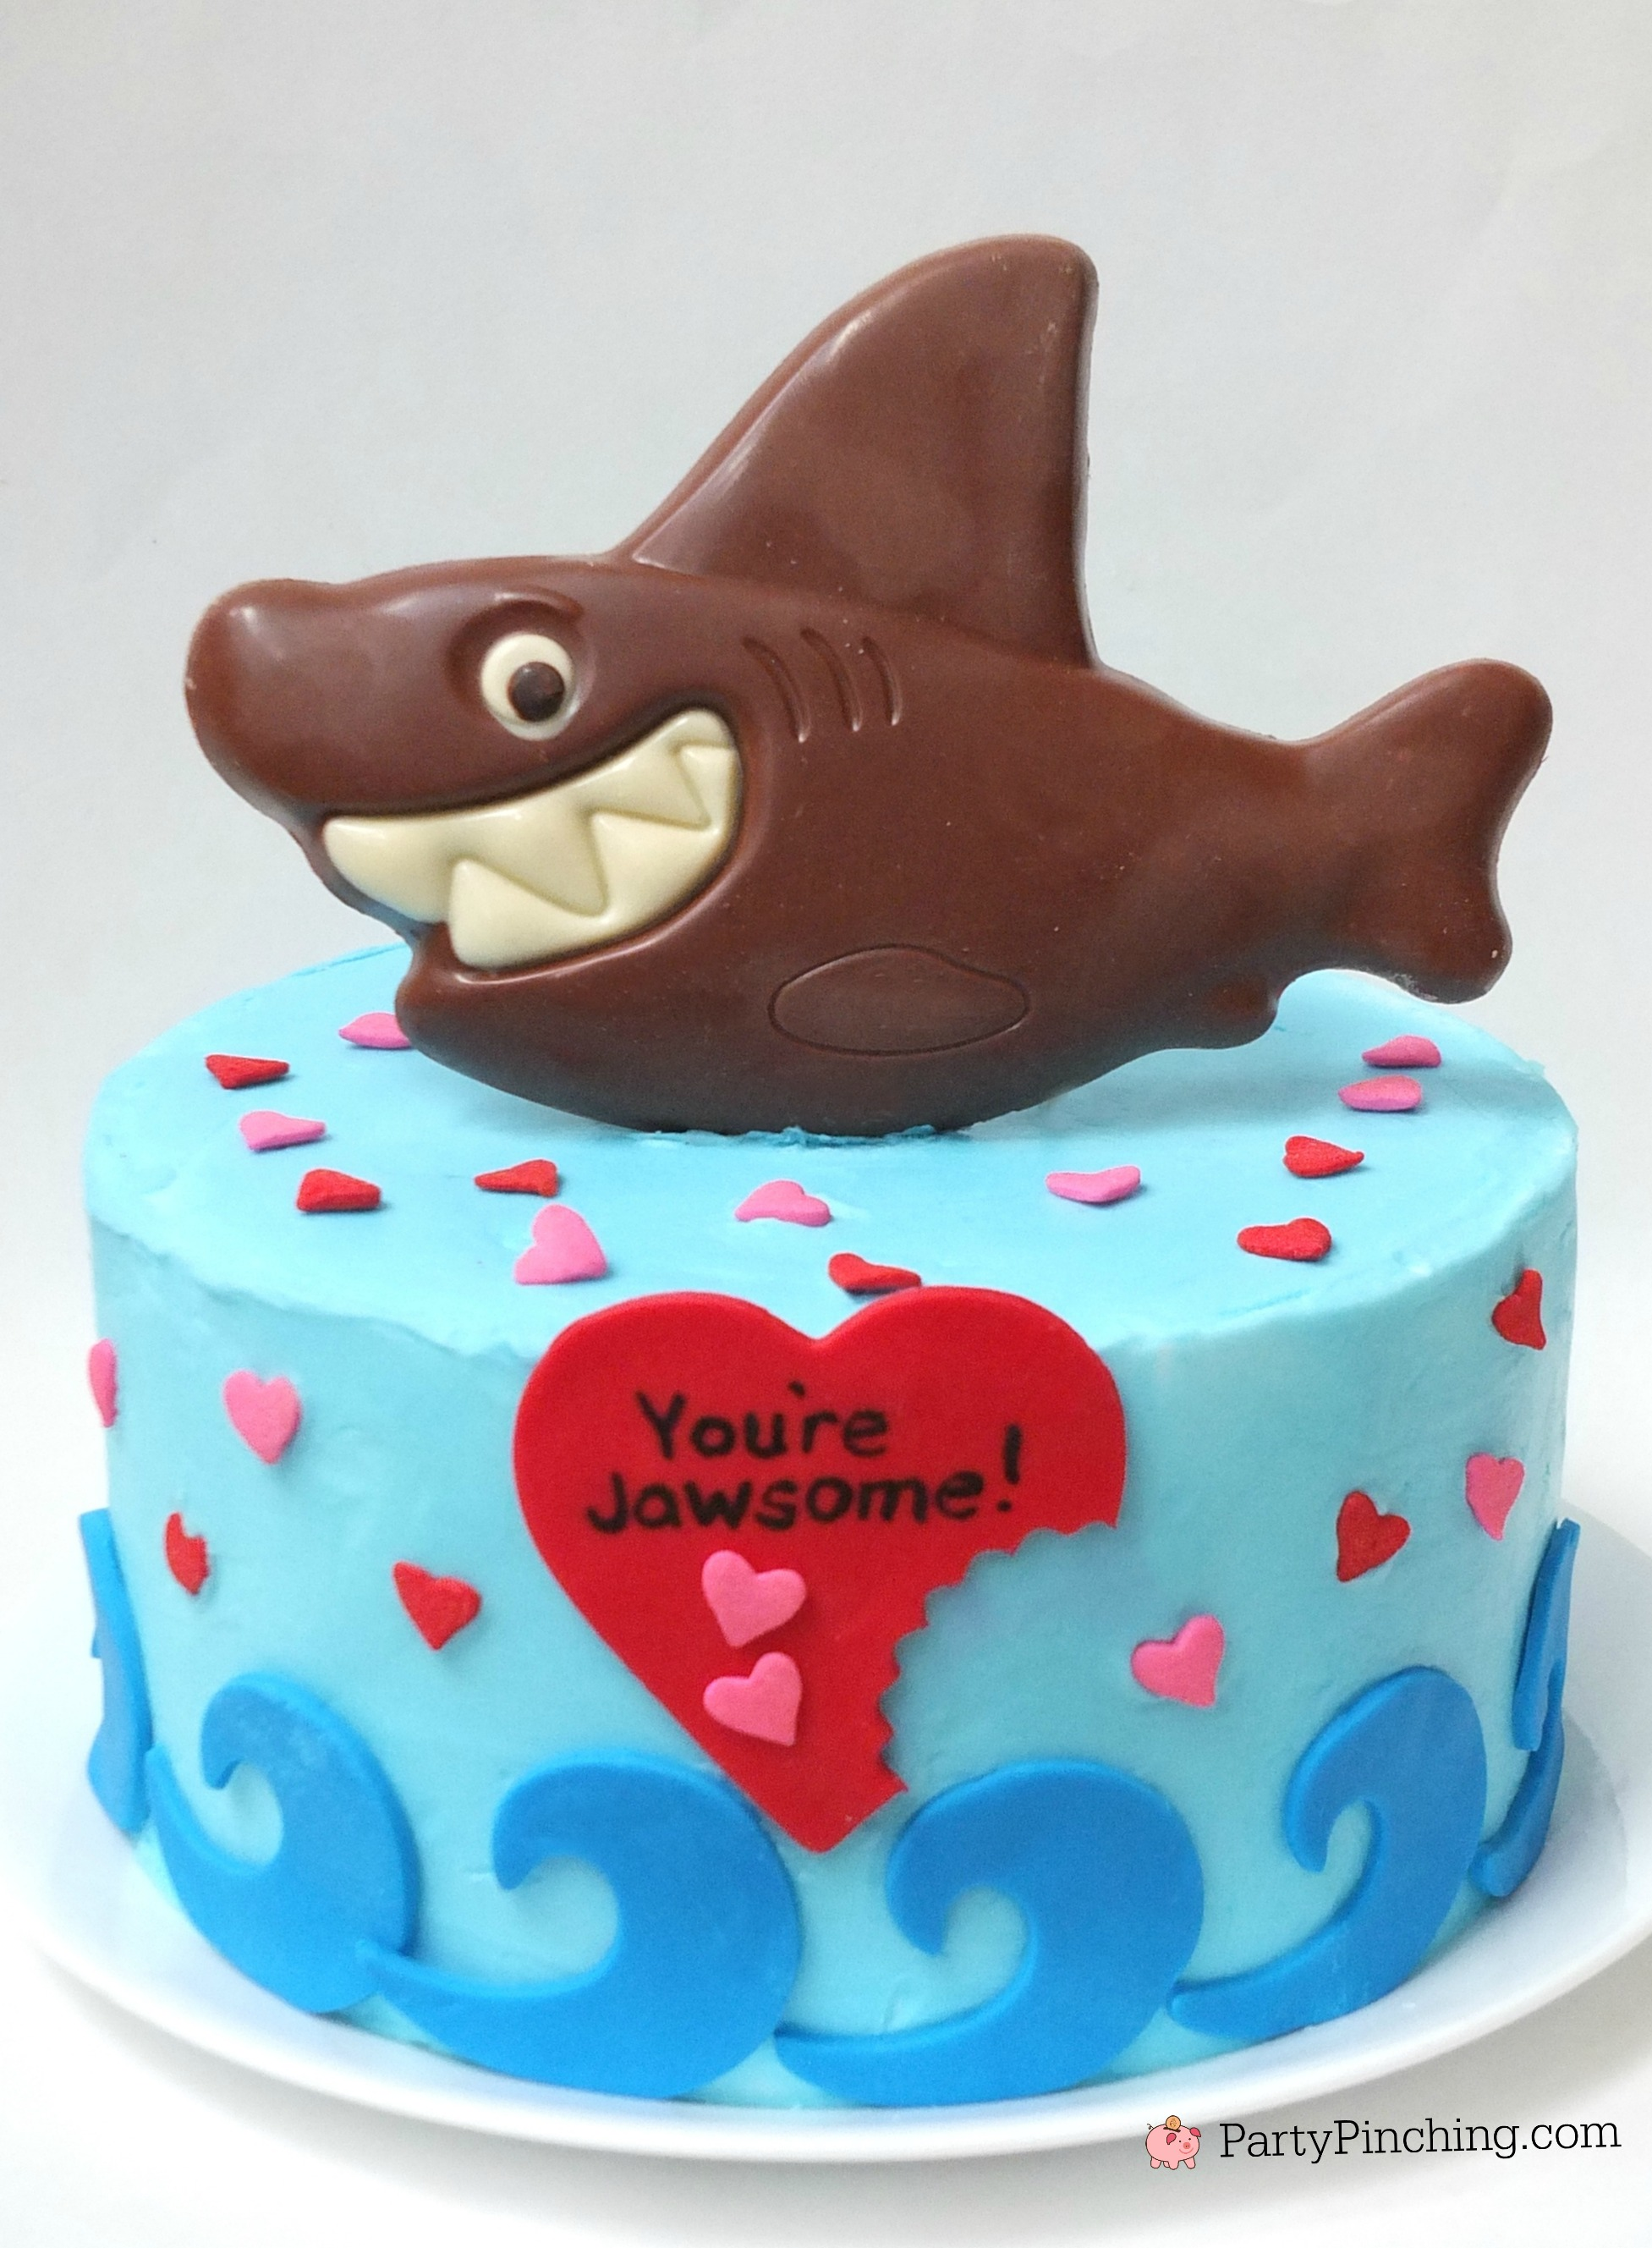 shark cake, you're jawsome Valentine's Day cake, RM Palmer shark chocolate, shark tank, shark party theme, beach cake, cute shark cake ideas, shark week dessert party ideas